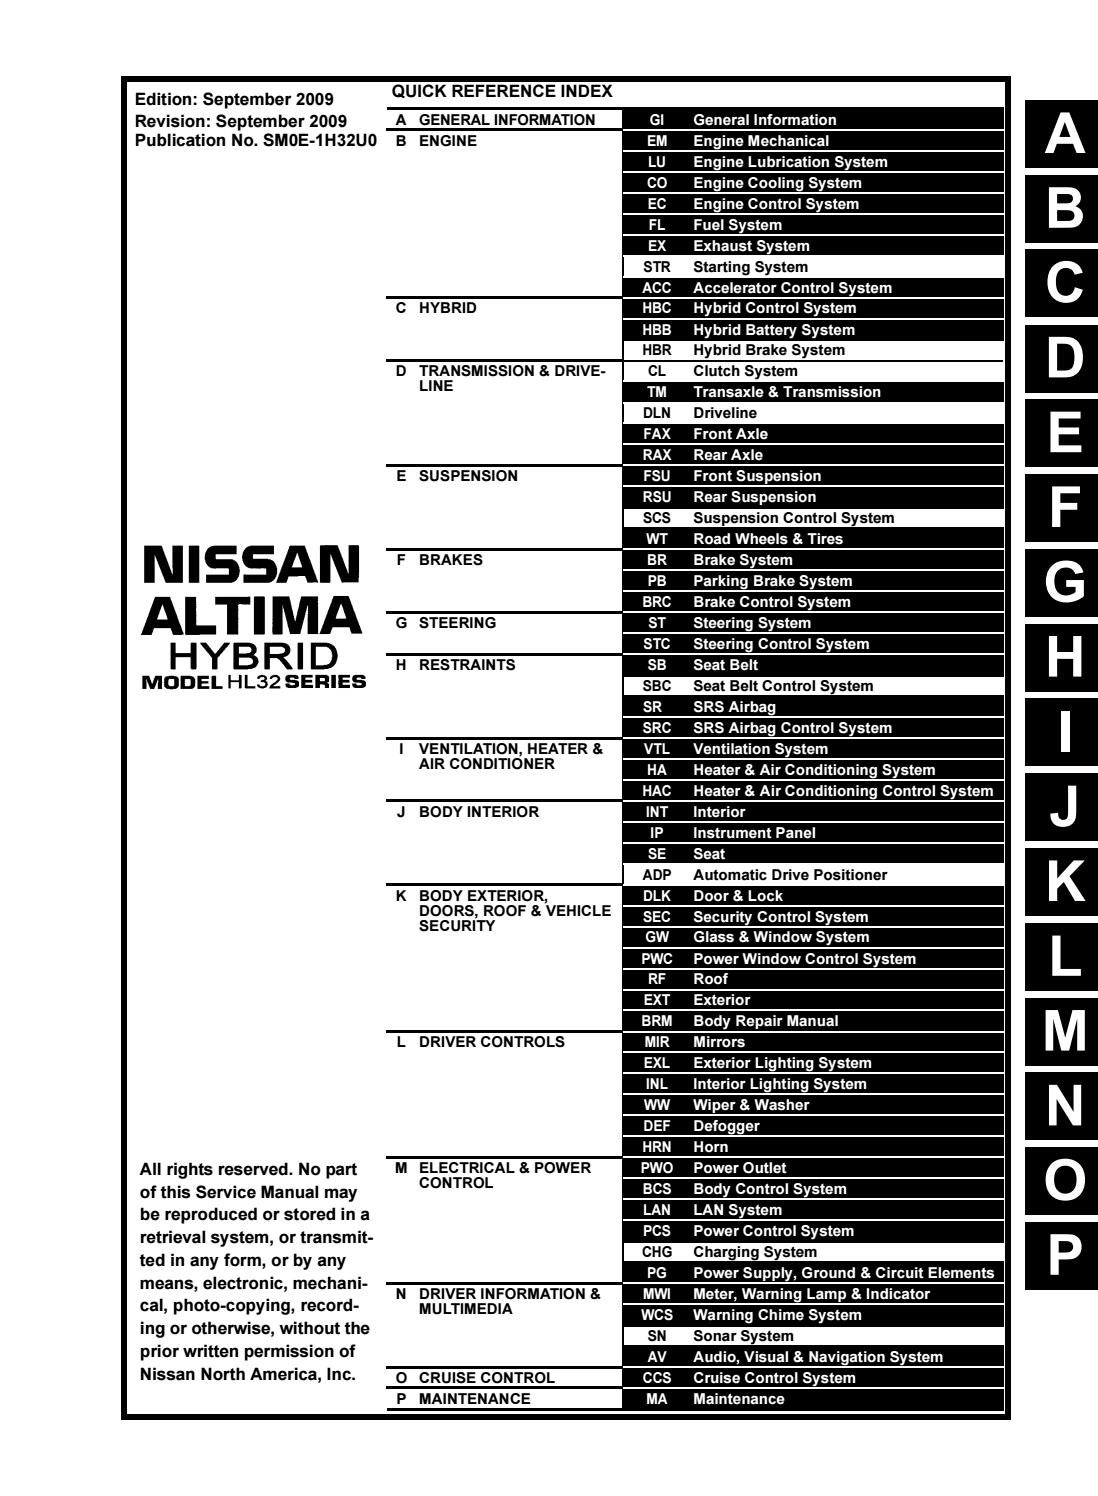 2010 Nissan Altima Hybrid Service Repair Manual By 163633 Issuu